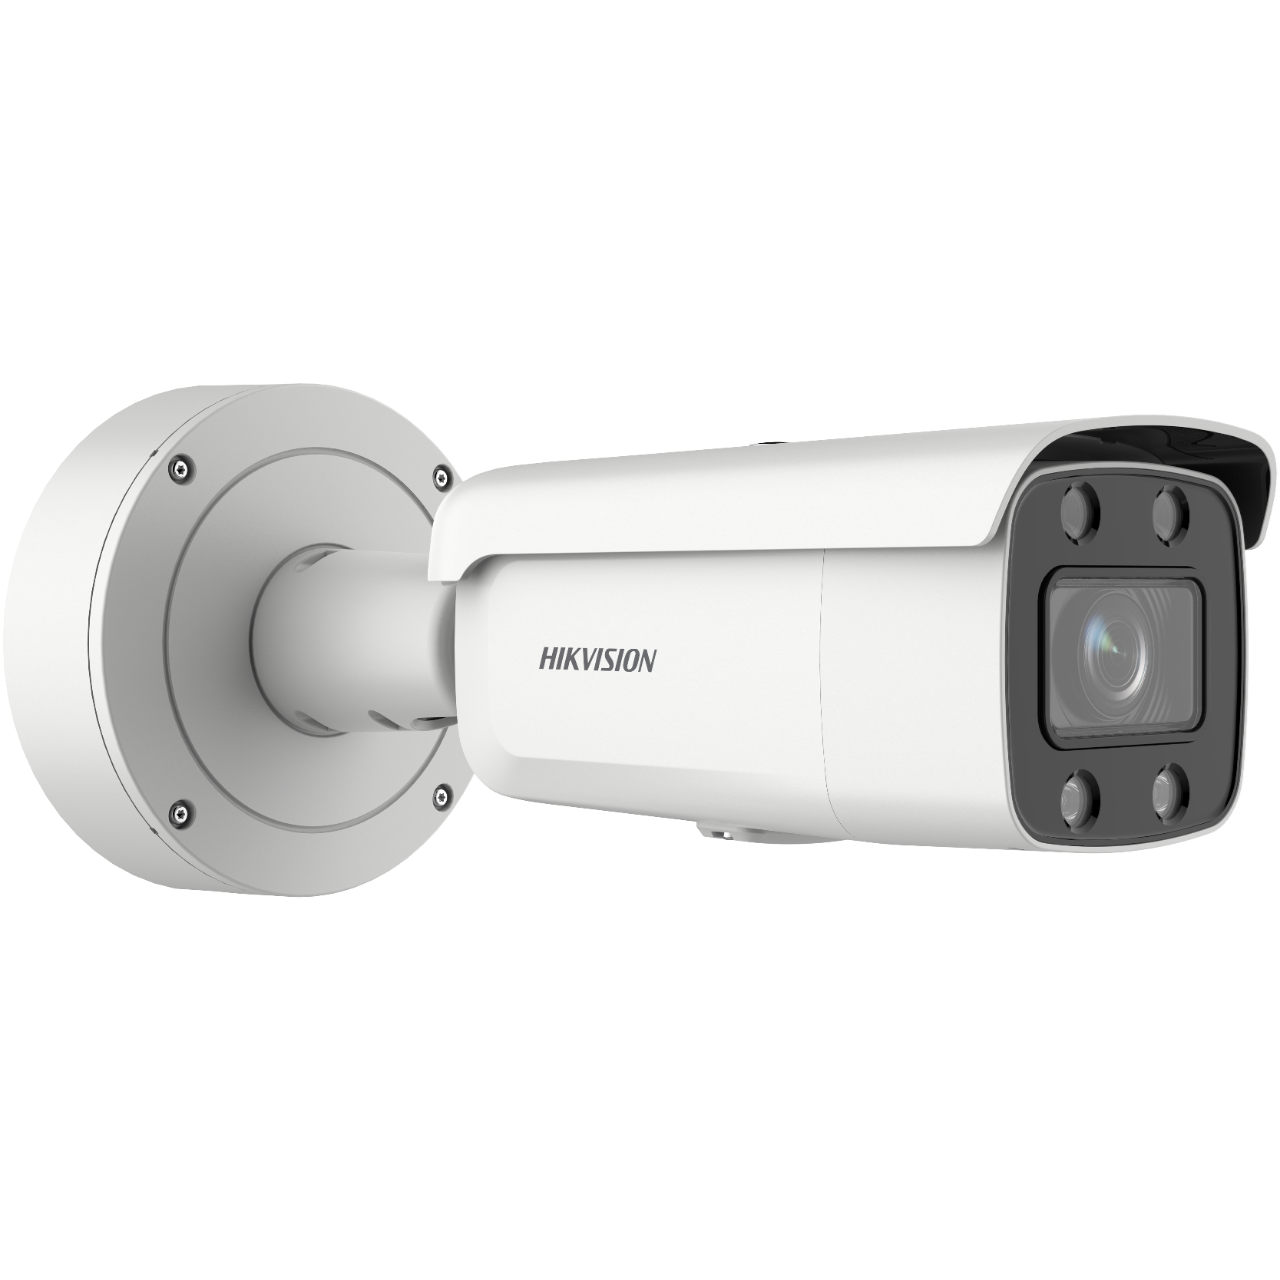 Picture of DS-2CD2647G2-LZS(C)  4MP ColorVu Motorized Varifocal Bullet IP 3.6-9mm Camera Hikvision